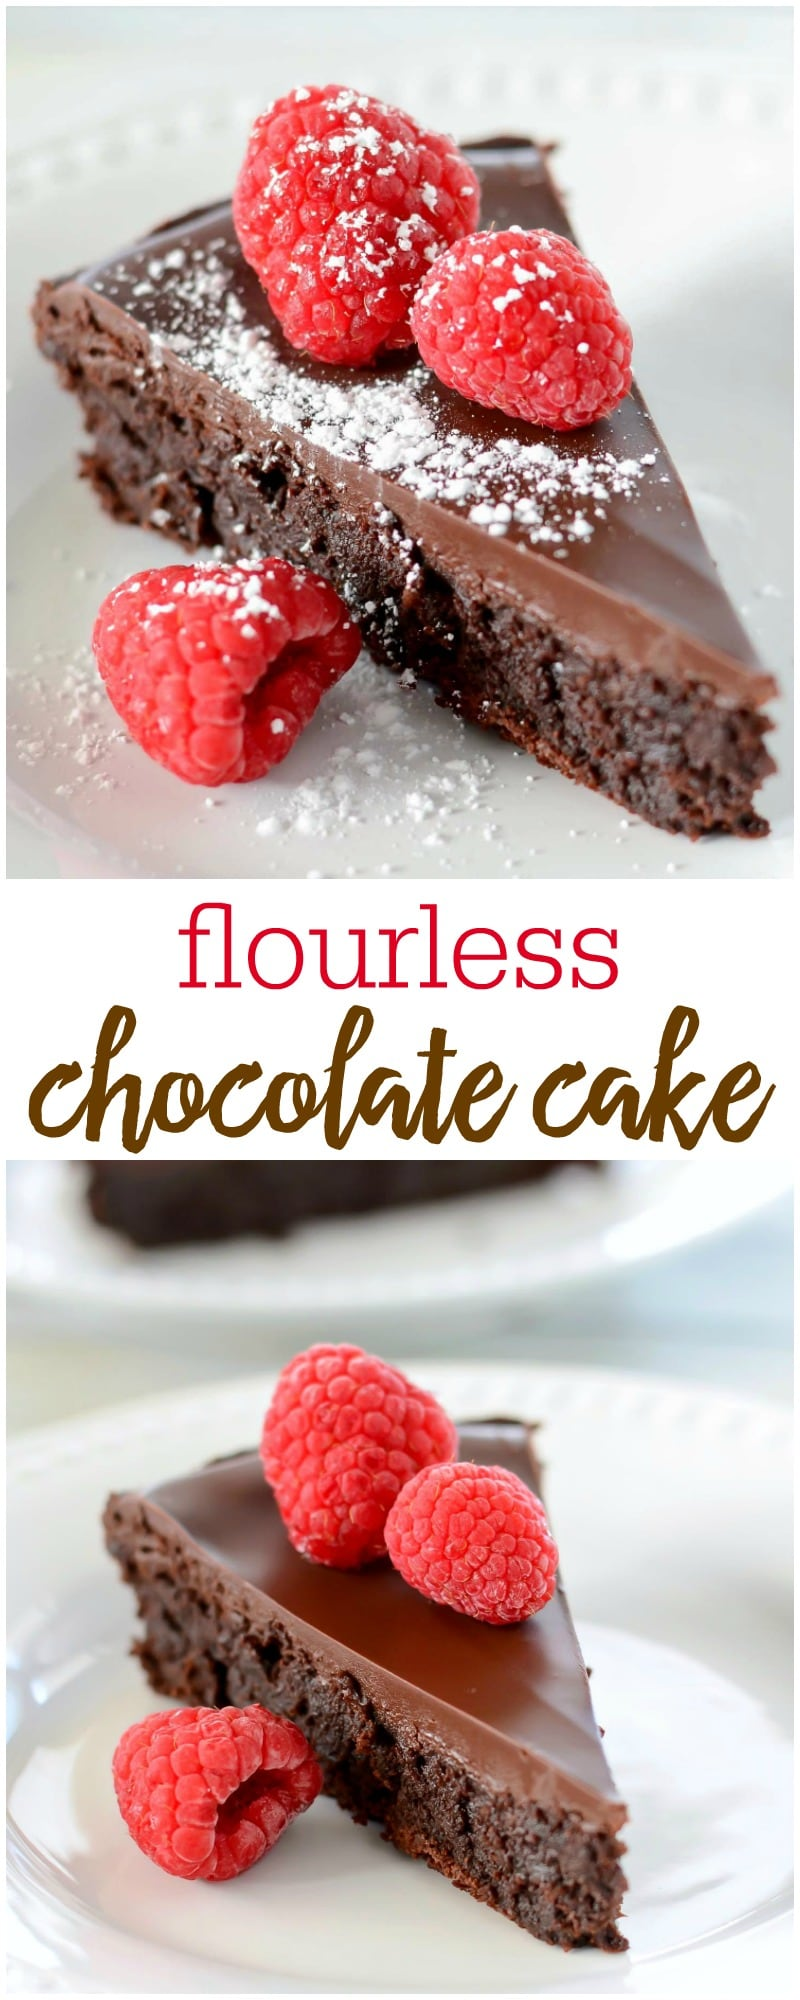 The BEST Flourless Chocolate Cake recipe. This simple, smooth and fudgy cake is sure to get rave reviews!